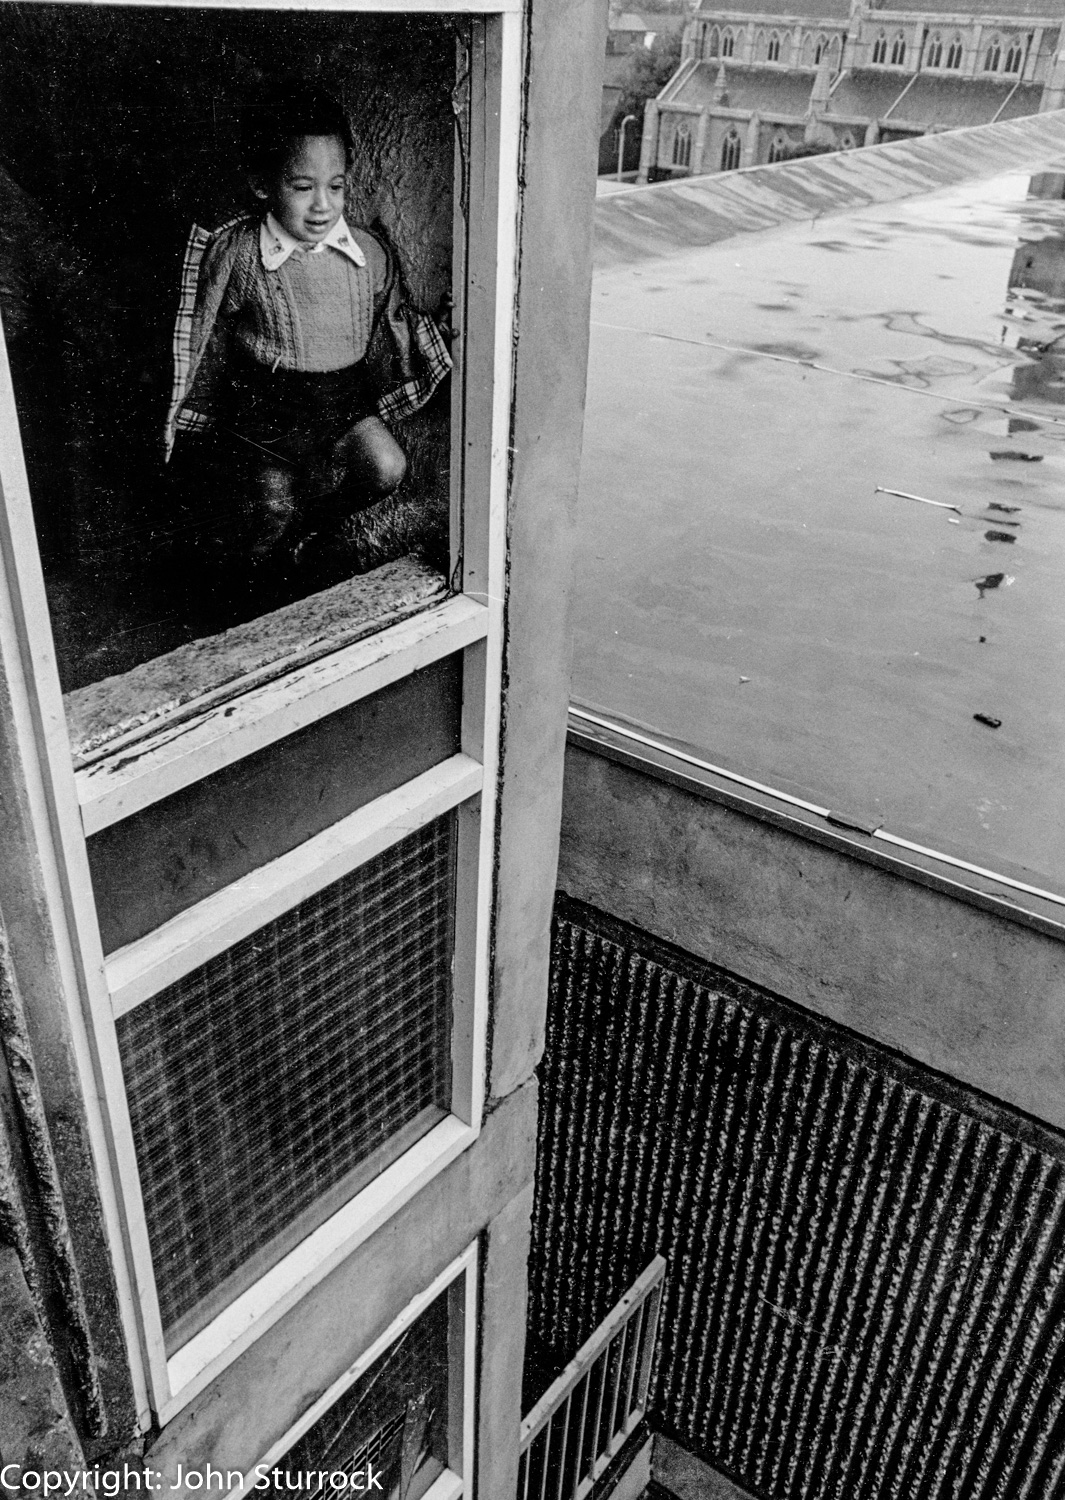 Dangerous stairwell in council flats, Moss Side, Manchester 1974